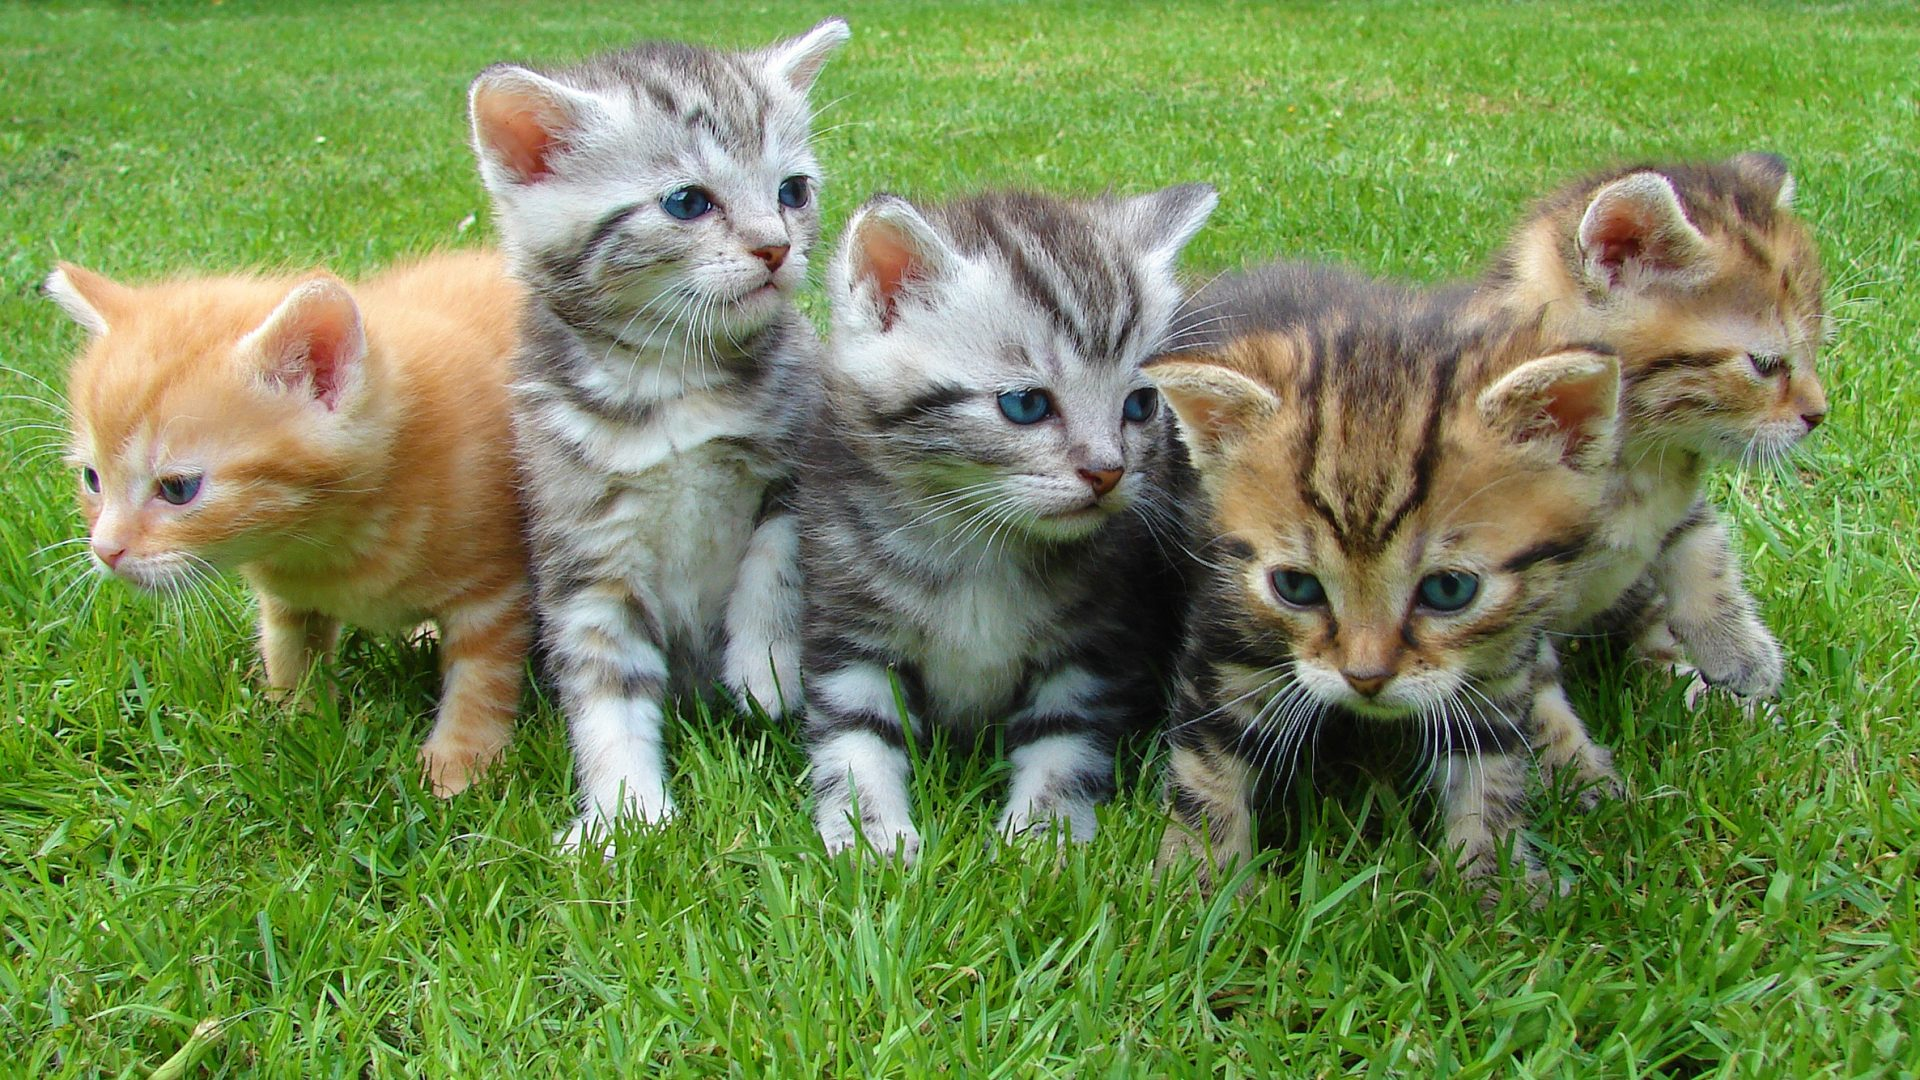 Army Iphone X Wallpaper Kittens In The Grass Hd Wallpaper